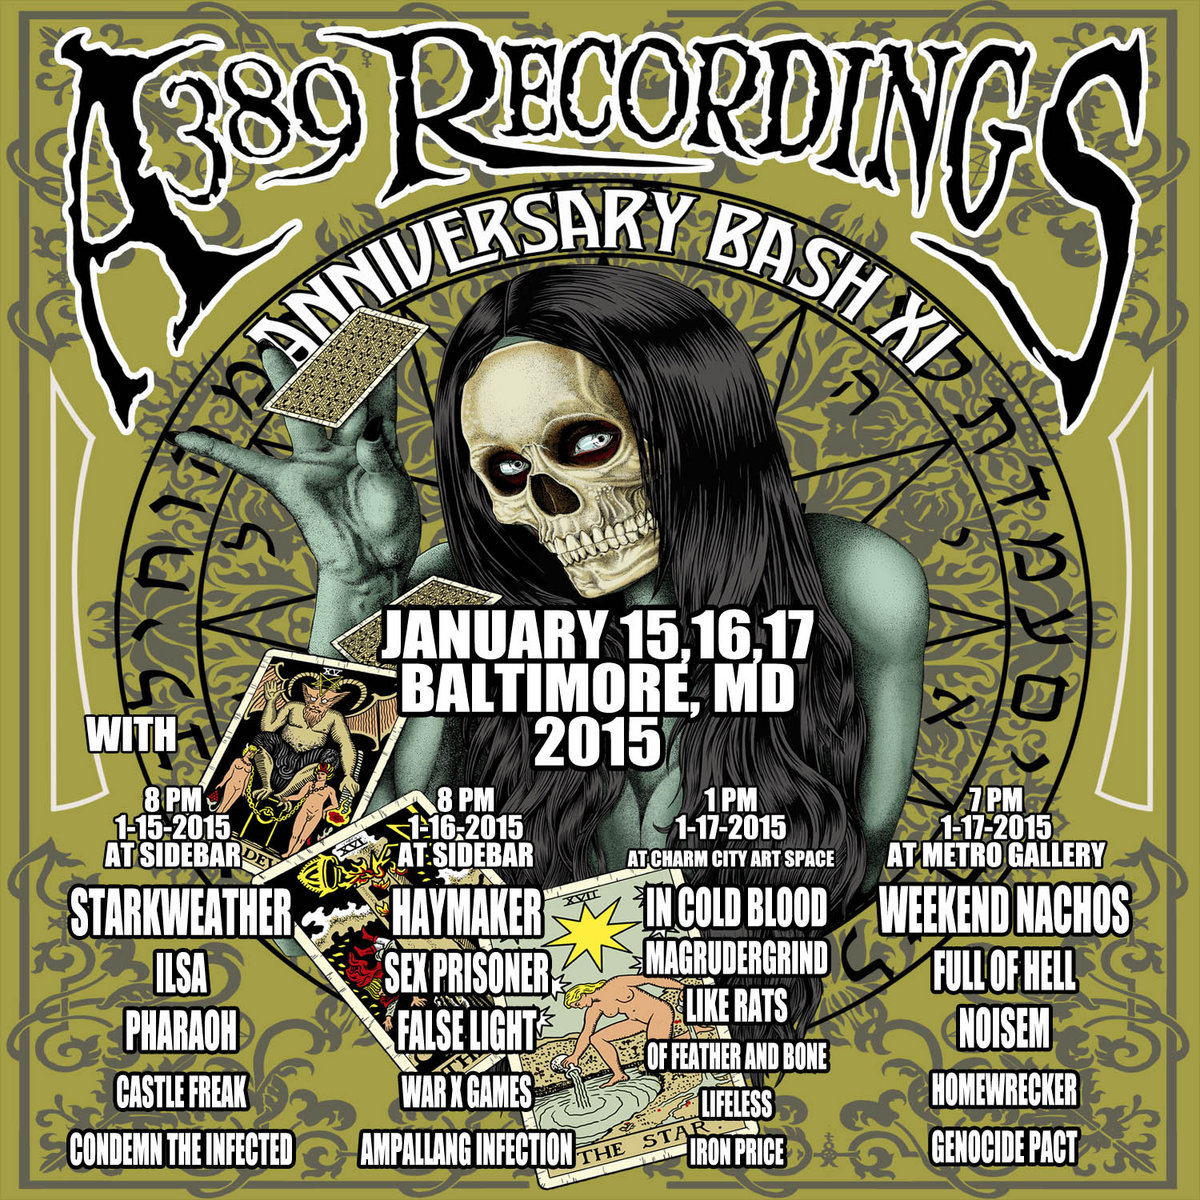 POSTER FOR THE A389 11TH ANNIVERSARY BASH